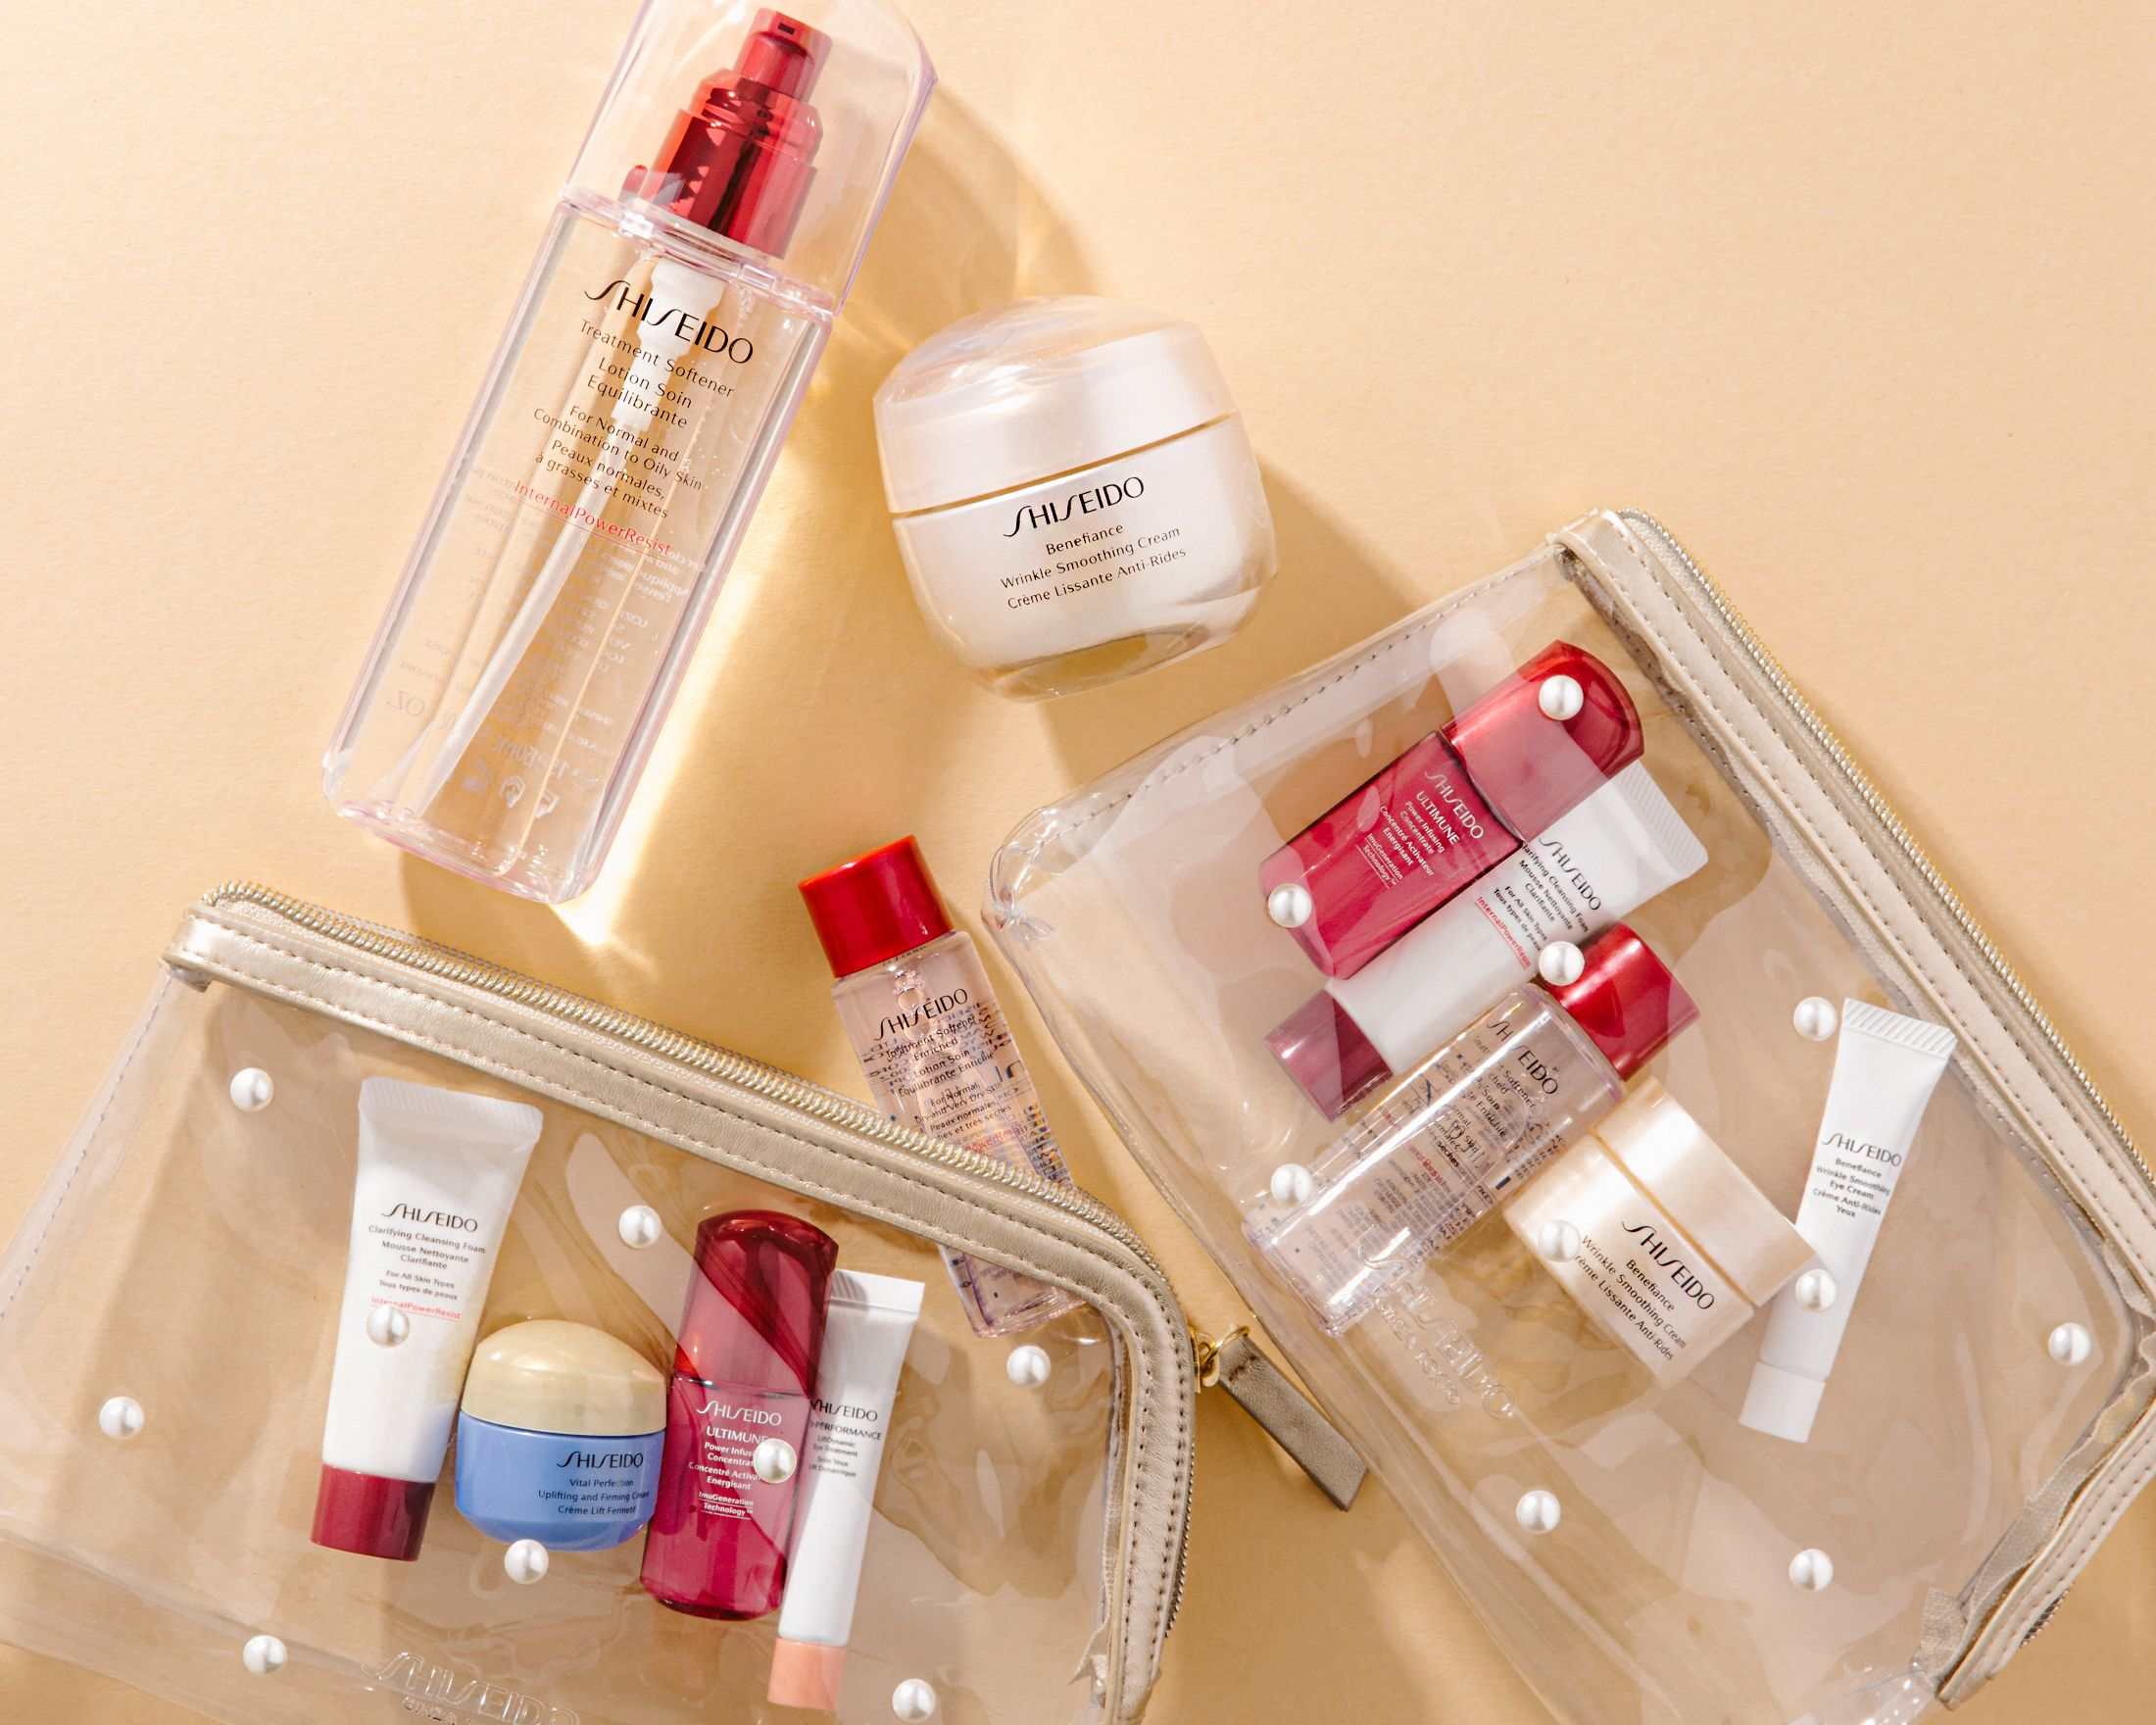 The Spring Shiseido gift with purchase is now exclusively